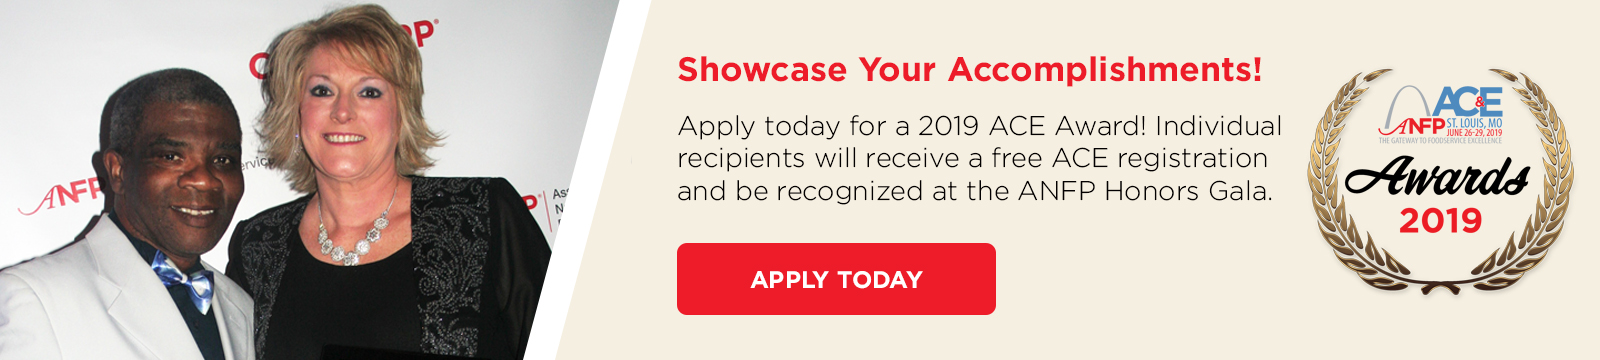 2019 ACE Awards - Apply Today